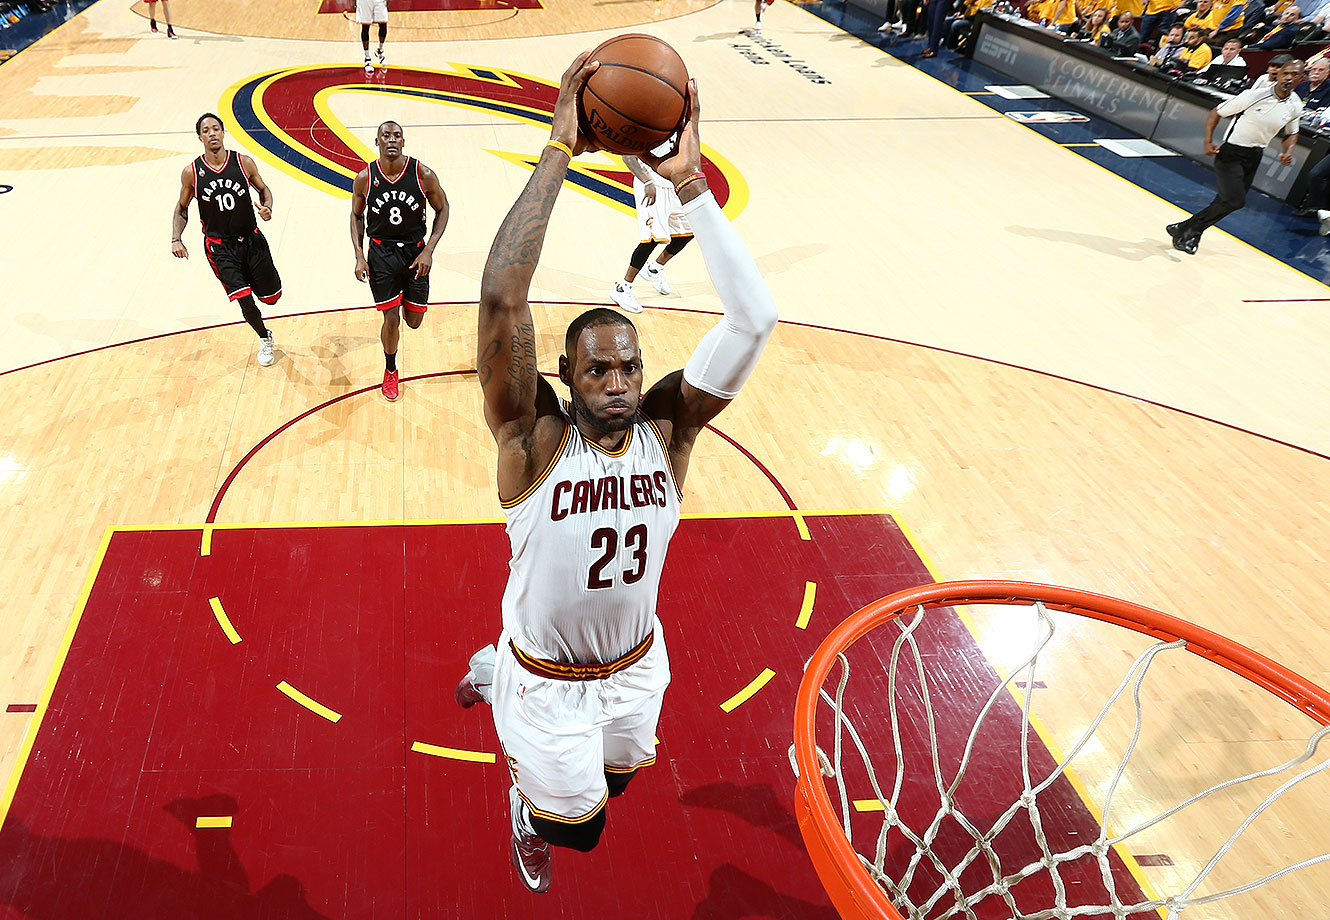 LeBron James #23 of the Cleveland Cavaliers goes up for a dunk against the Toronto Raptors in Game Five of the Eastern Conference Finals during the 2016 NBA Playoffs on May 25, 2016 at Quicken Loans Arena in Cleveland, Ohio.